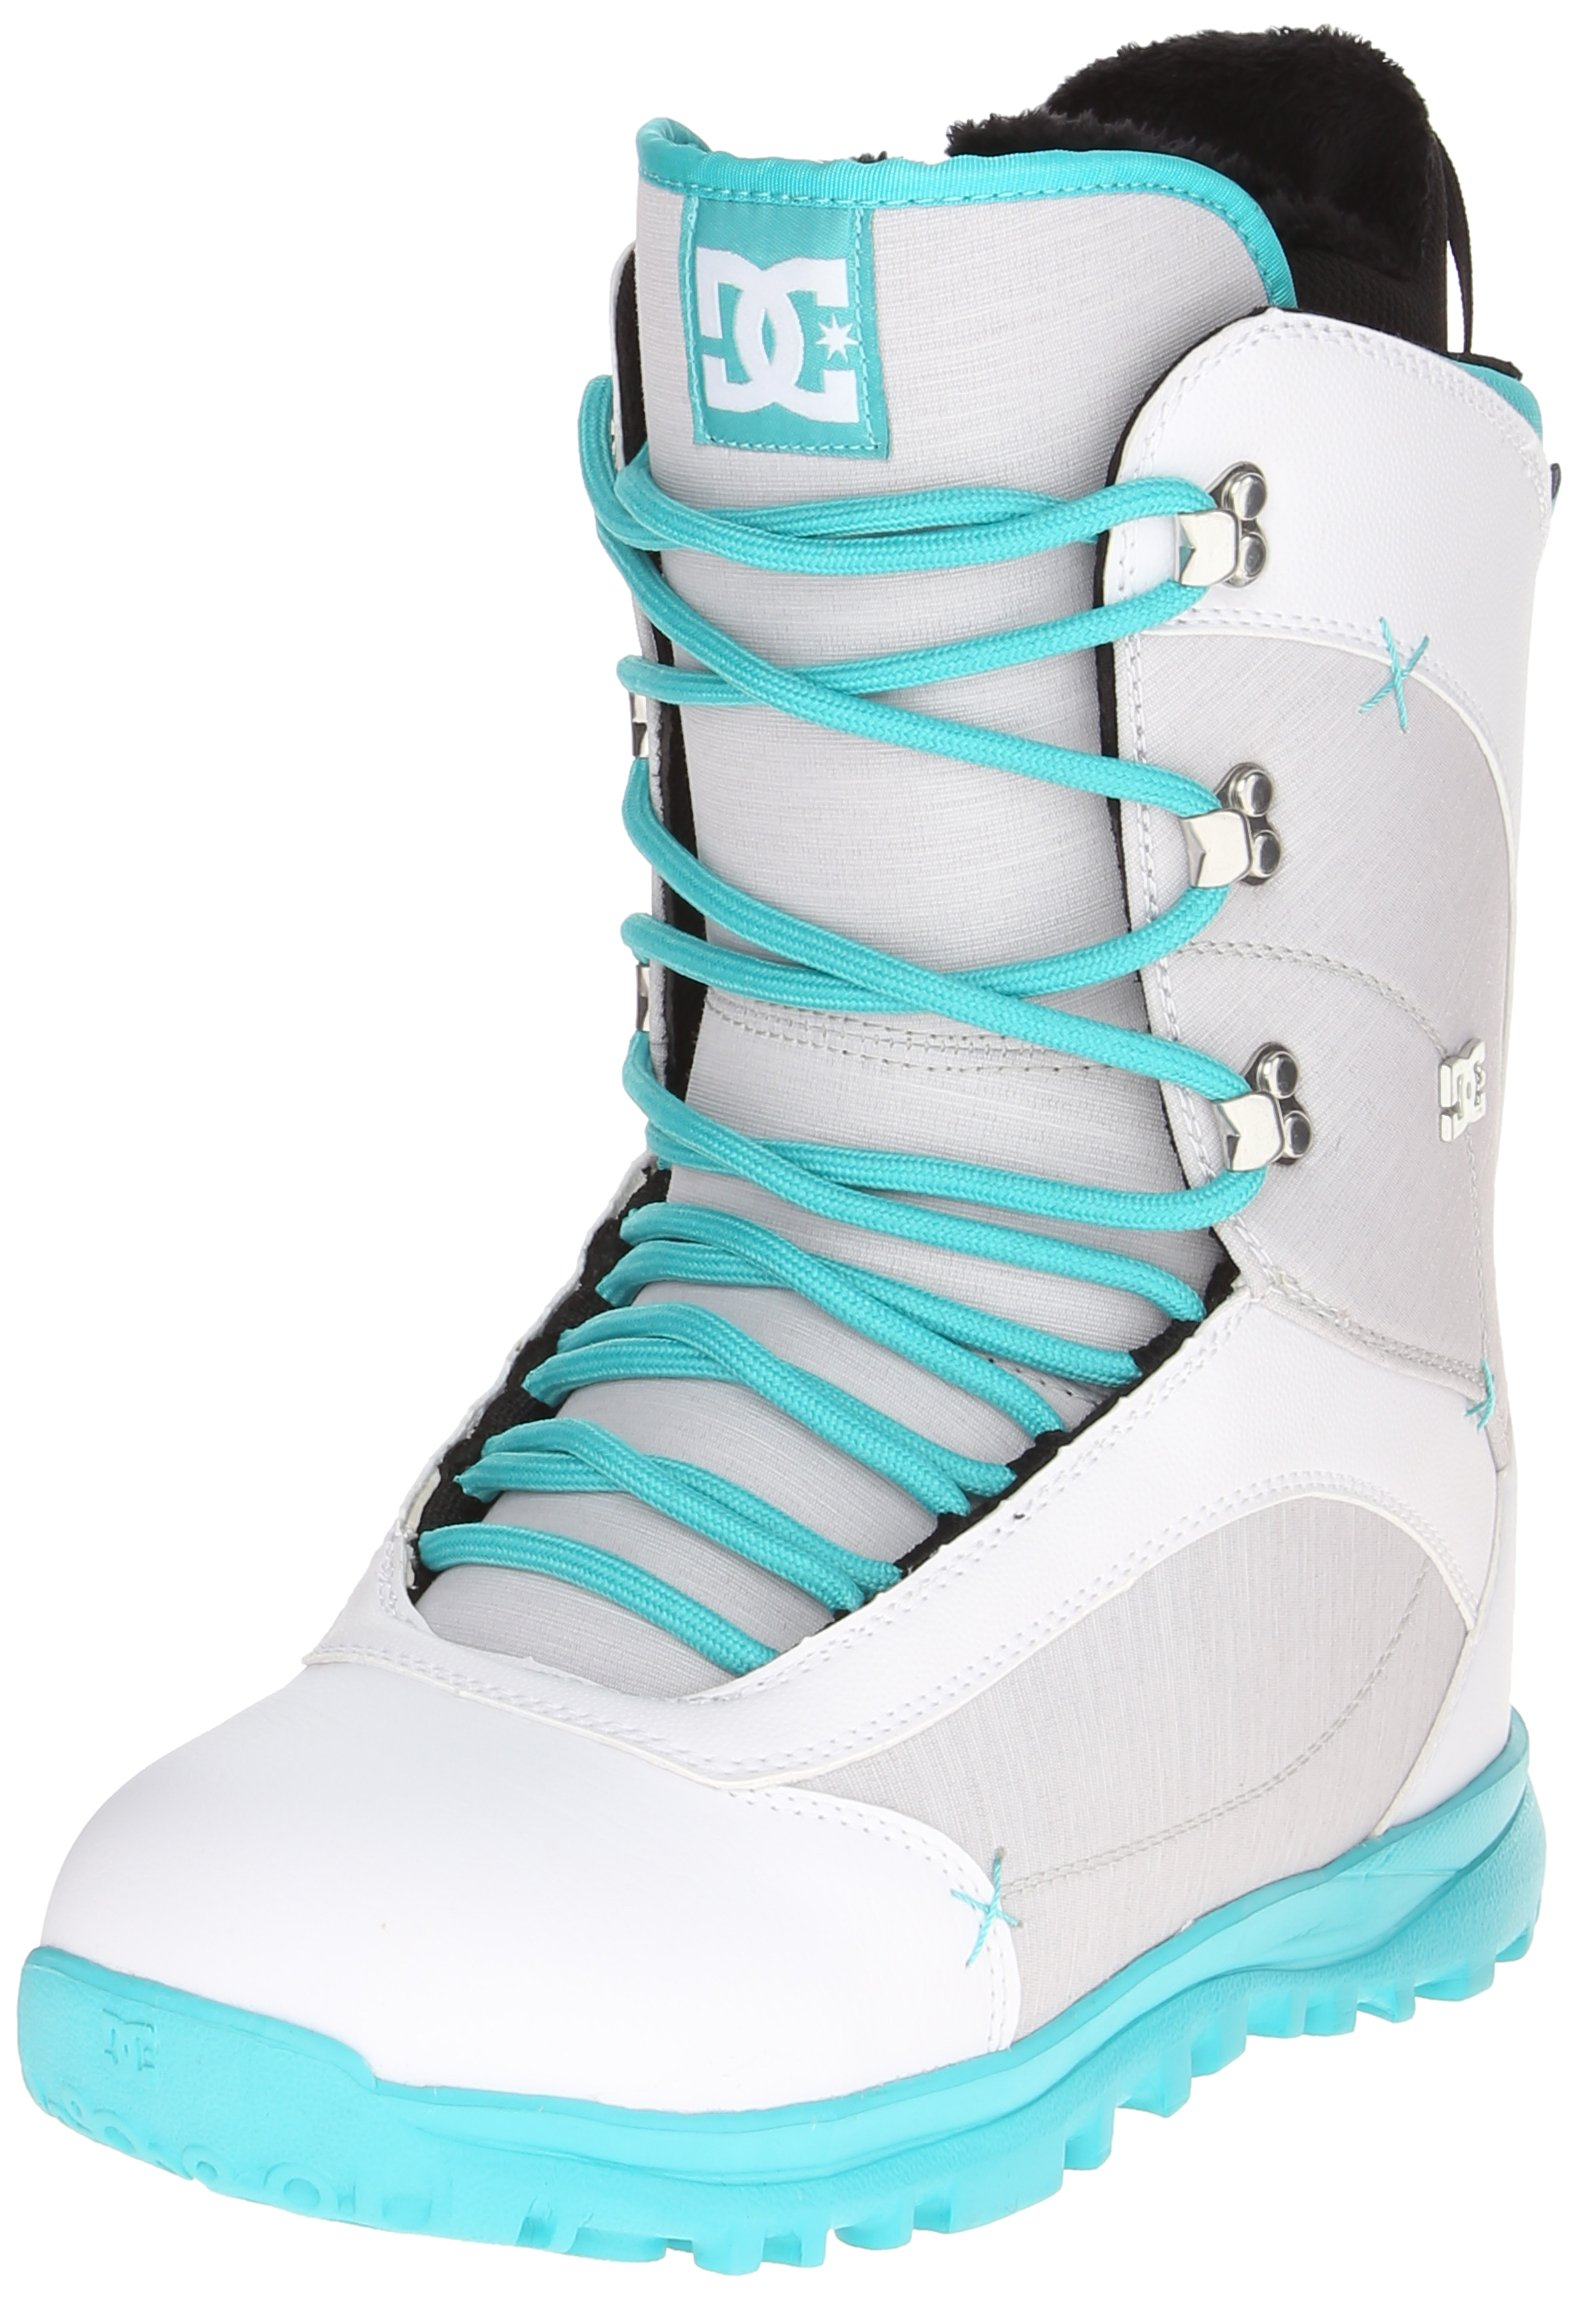 Best Rated in Women's Snowboard Boots & Helpful Customer